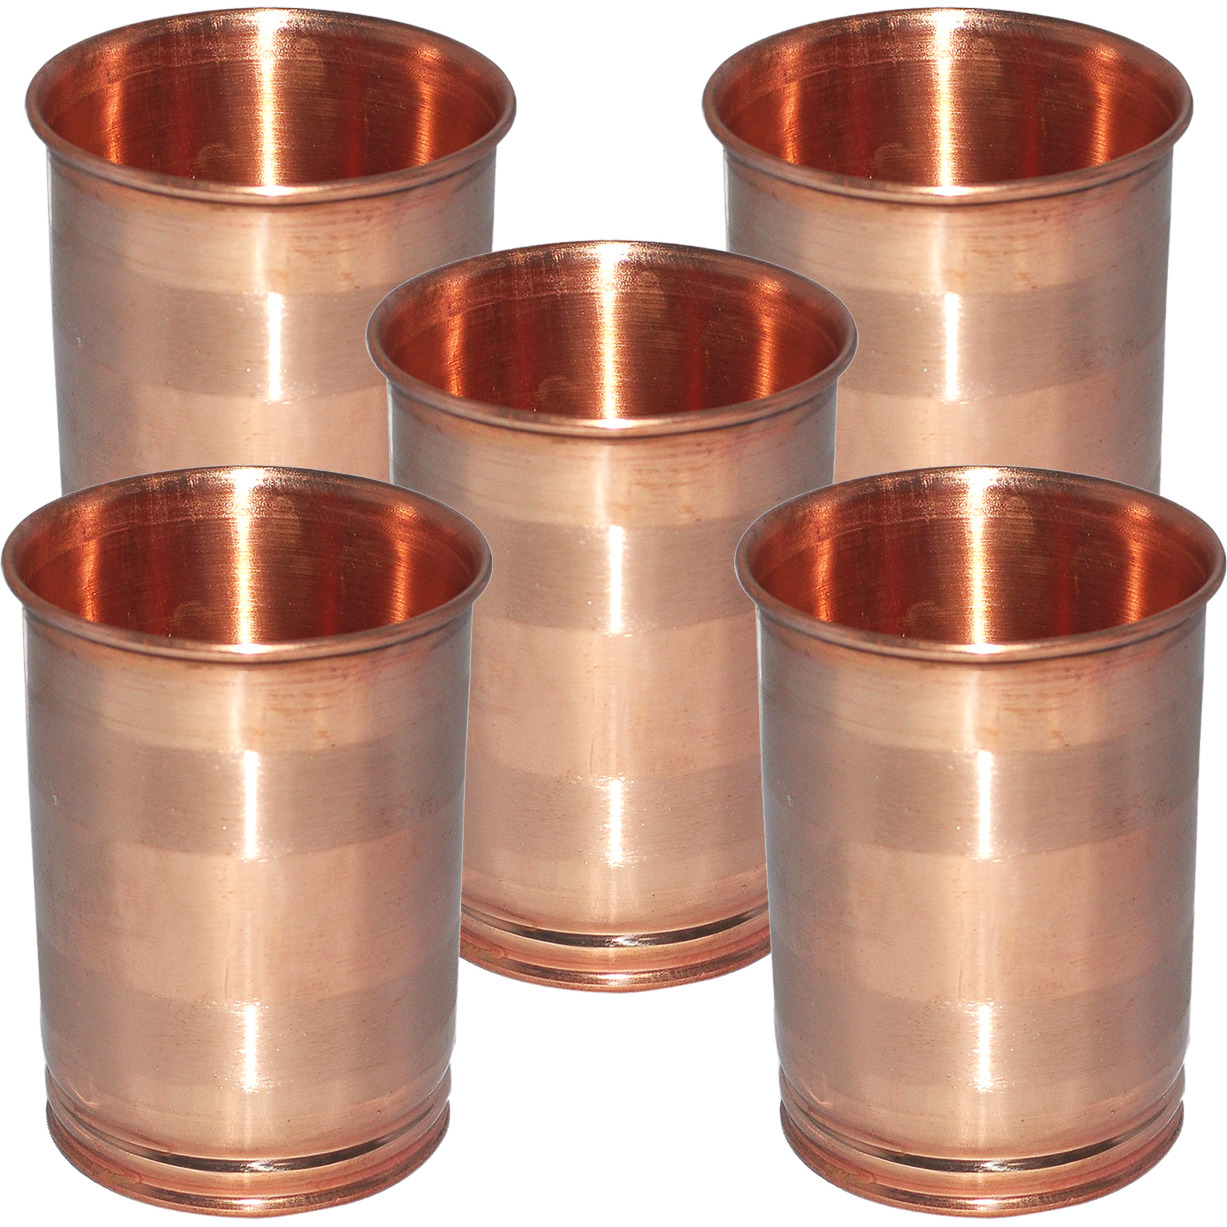 Set of 5 - Prisha India Craft B. Drinking Copper Glass Tumbler Handmade Water Glasses - Traveller's Copper Mug for Ayurveda Benefits - Copper Cup